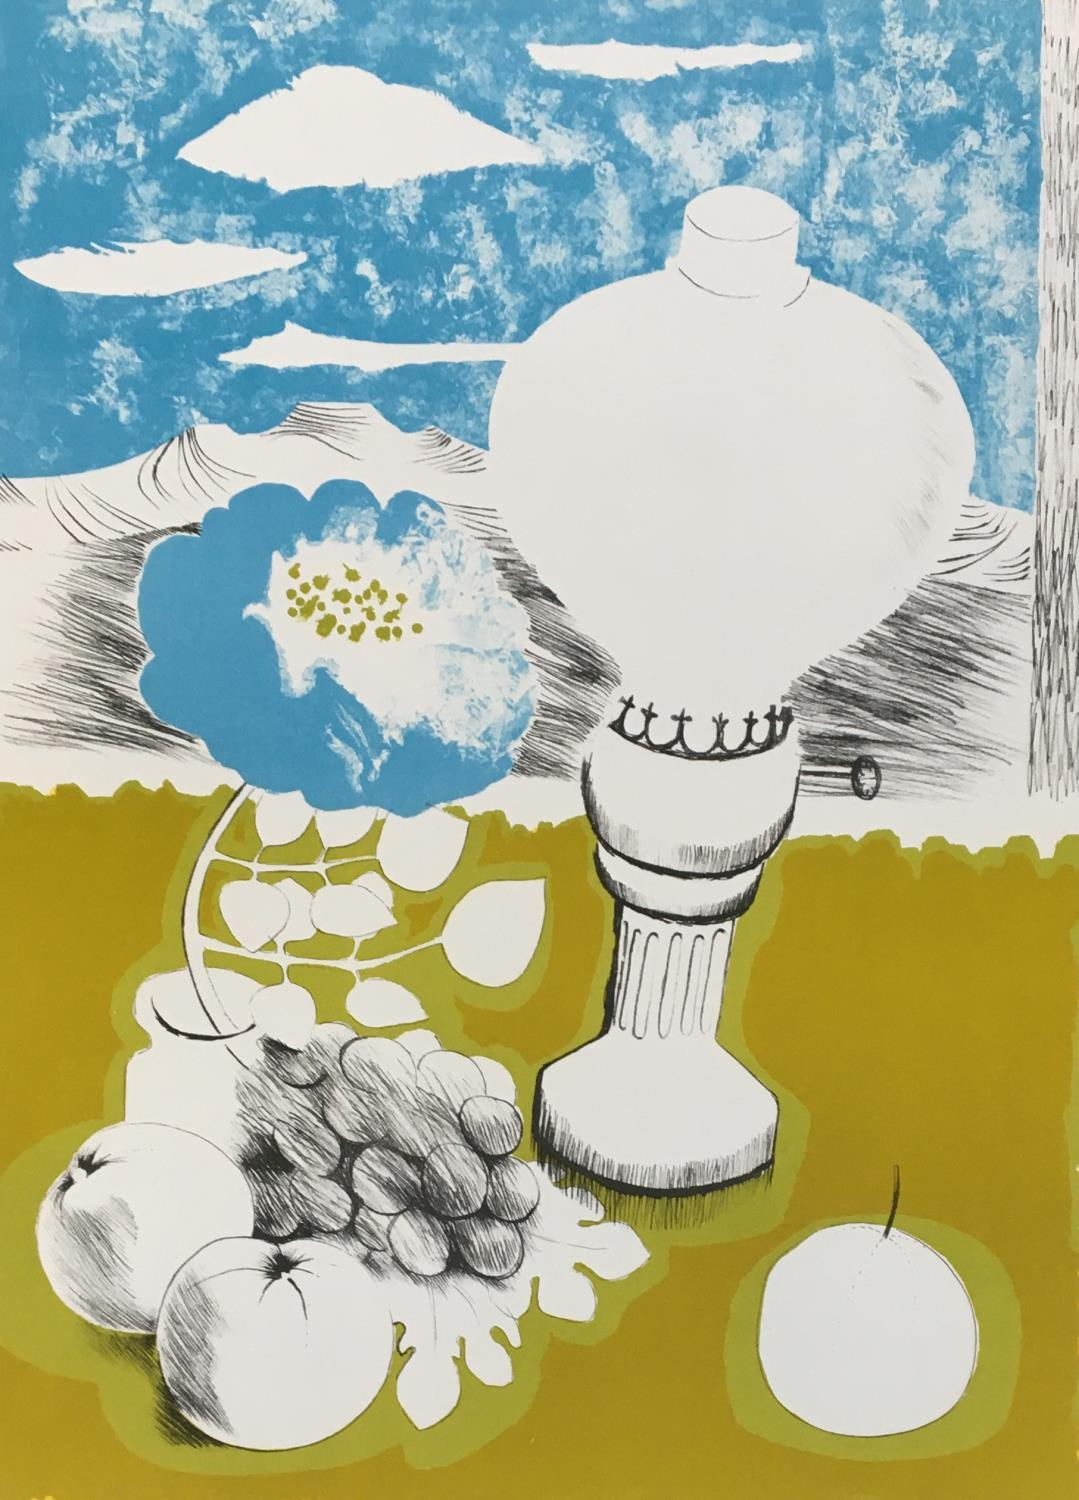 Mary Fedden LG RA, British 1915-2012- 'The Lamp'; lithograph printed in colours, signed and numbered